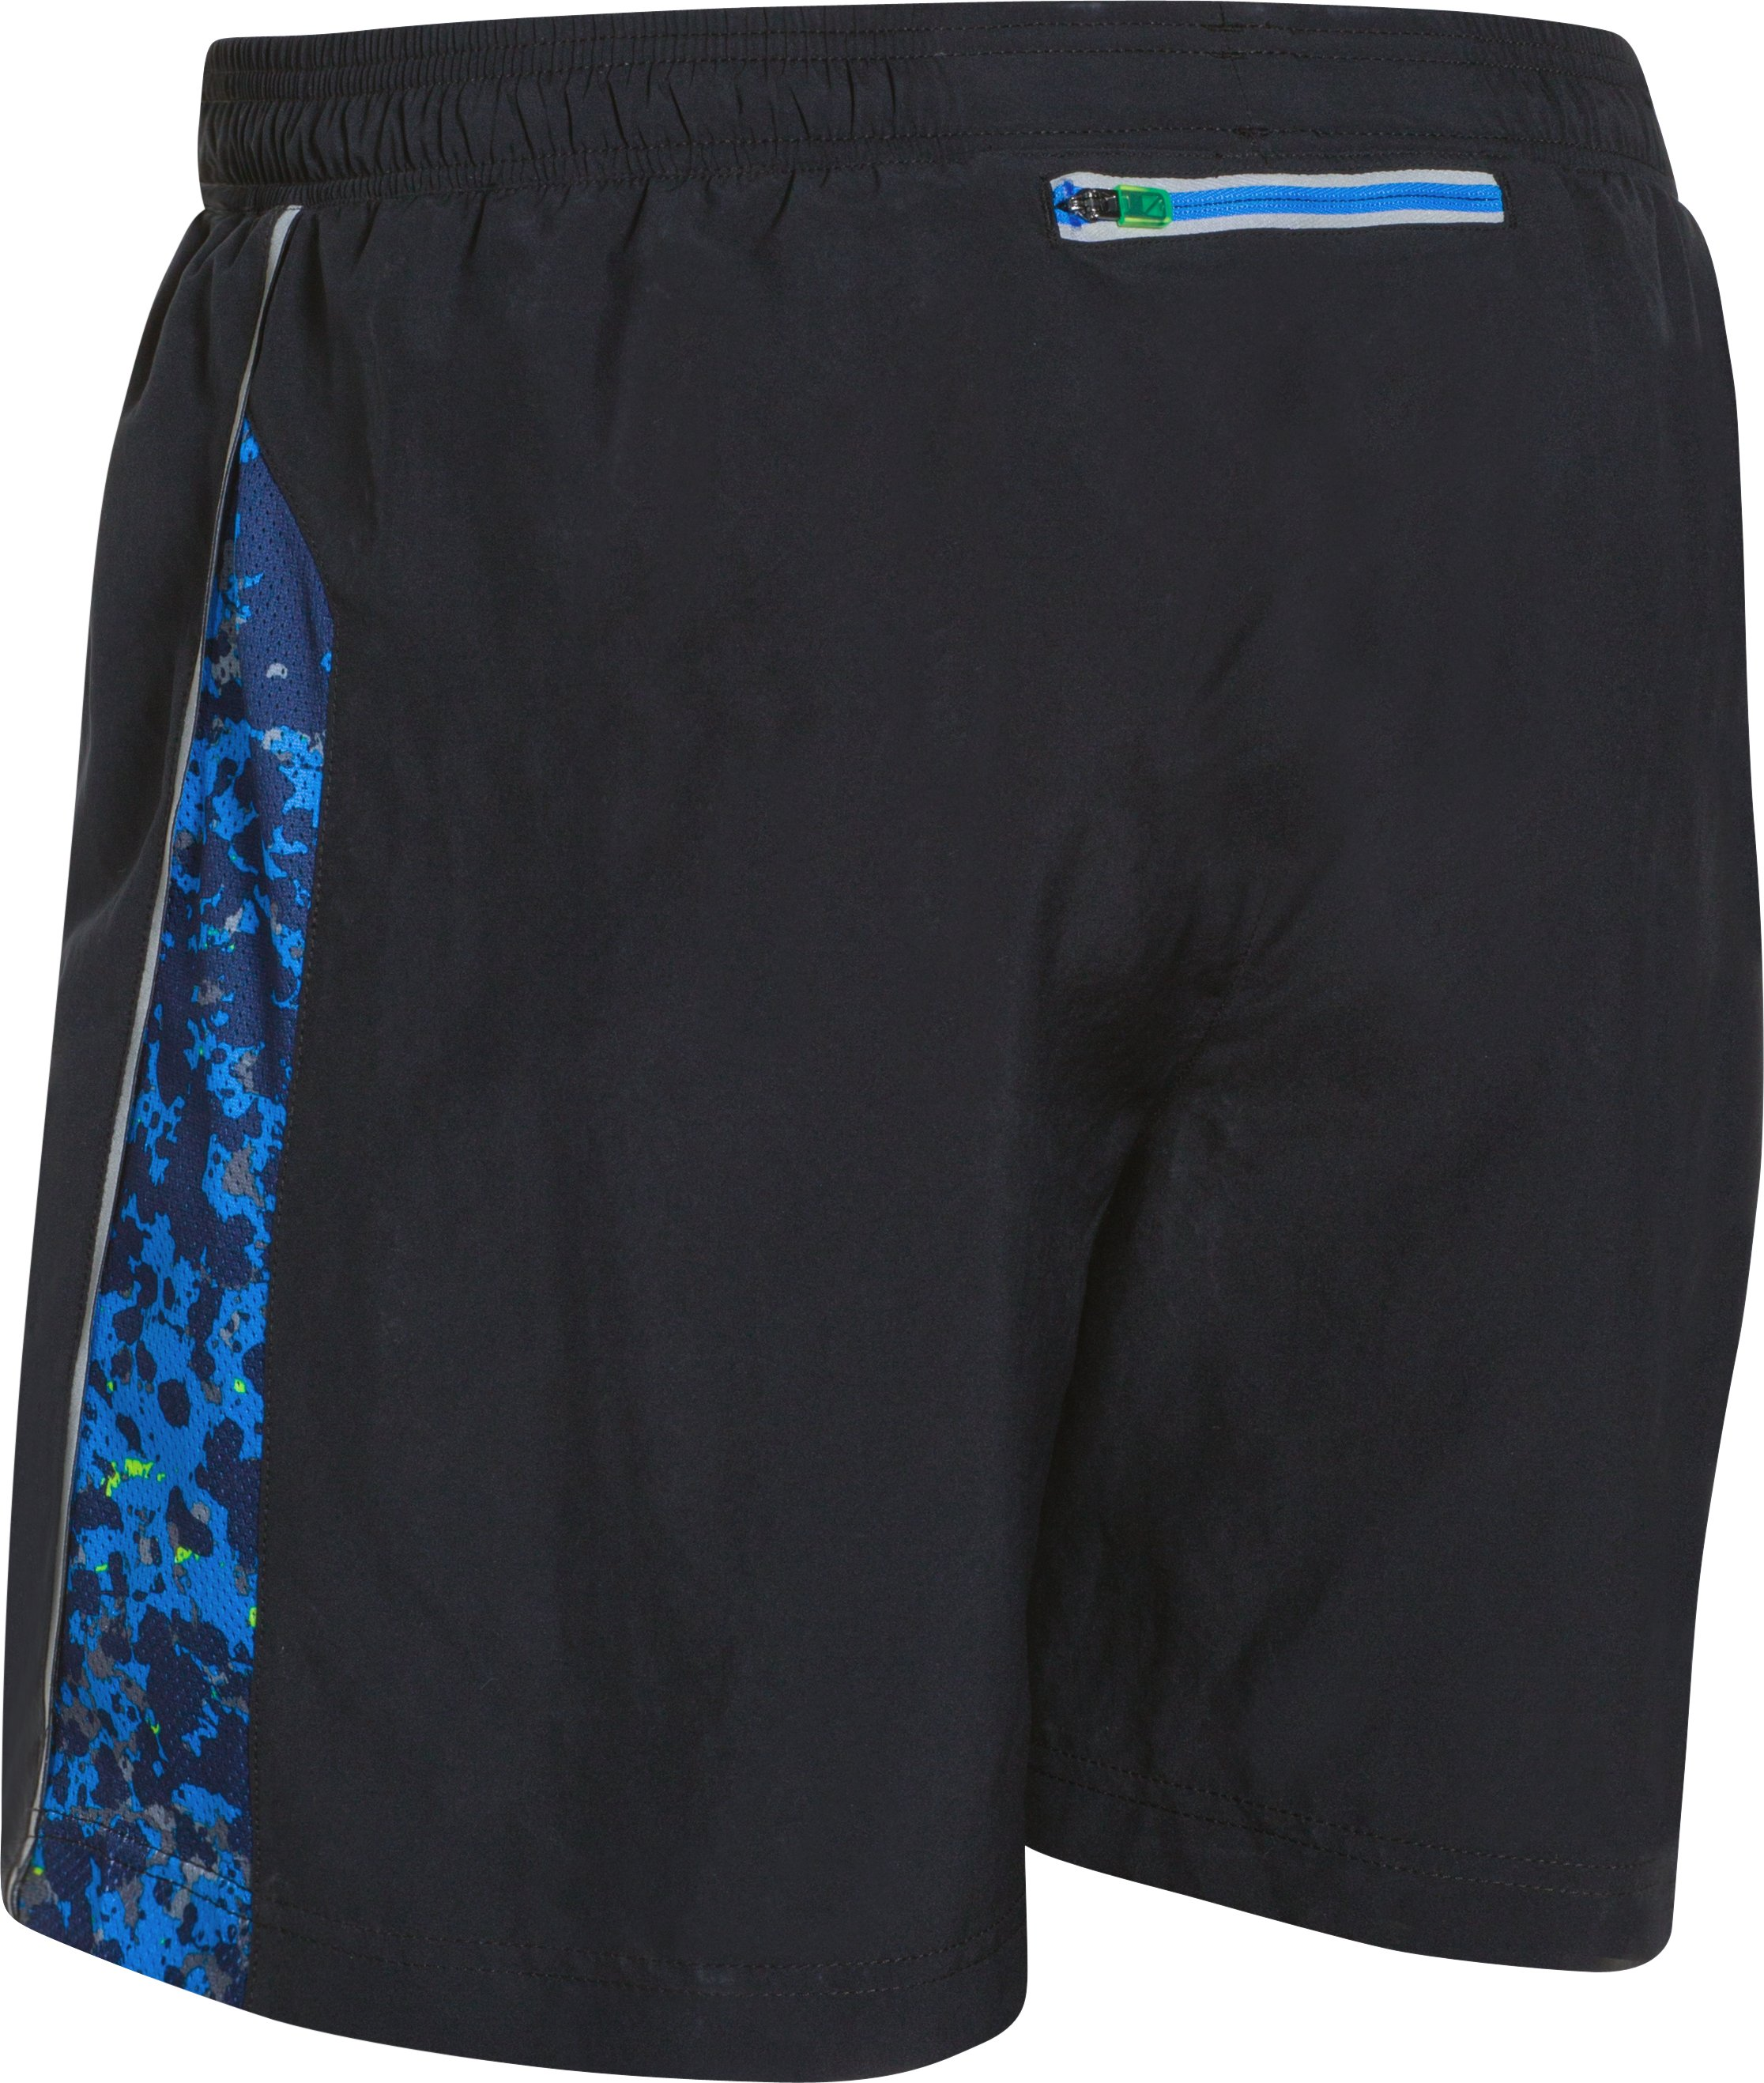 "Men's UA Launch Reflect 5"" Run Shorts, Black"